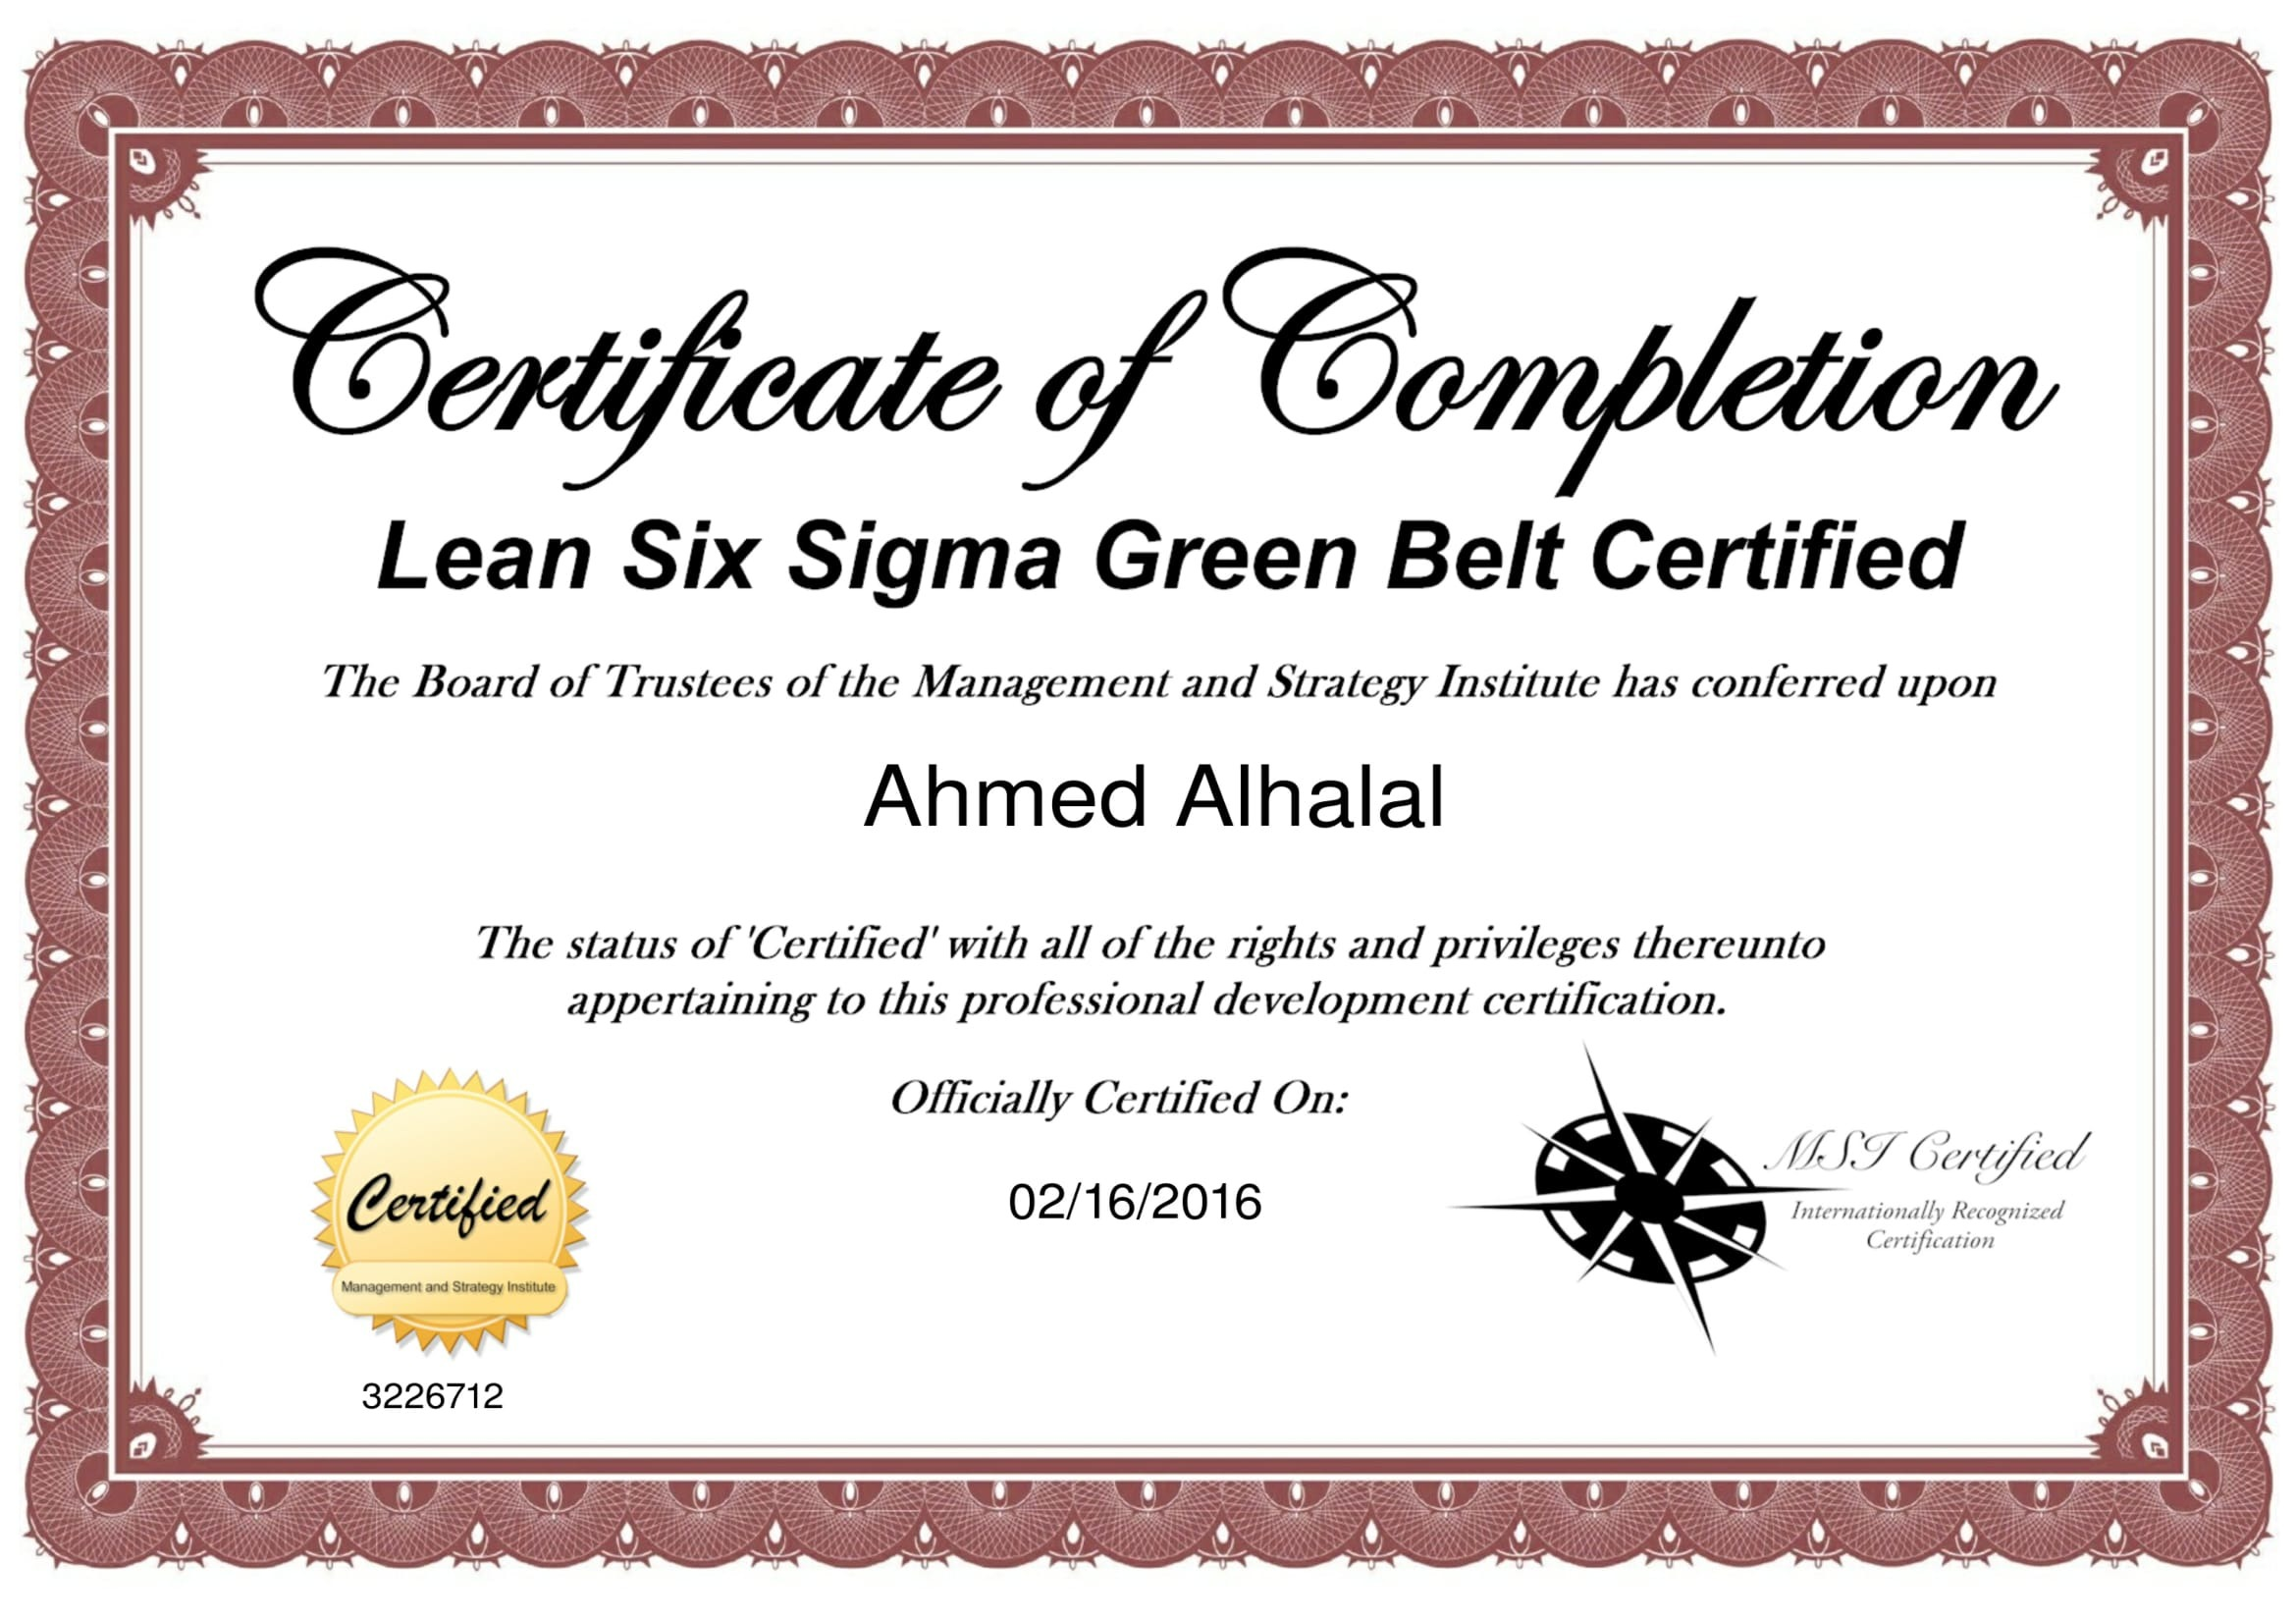 Ahmed alhalal bayt training institute management and strategy institute 1betcityfo Images